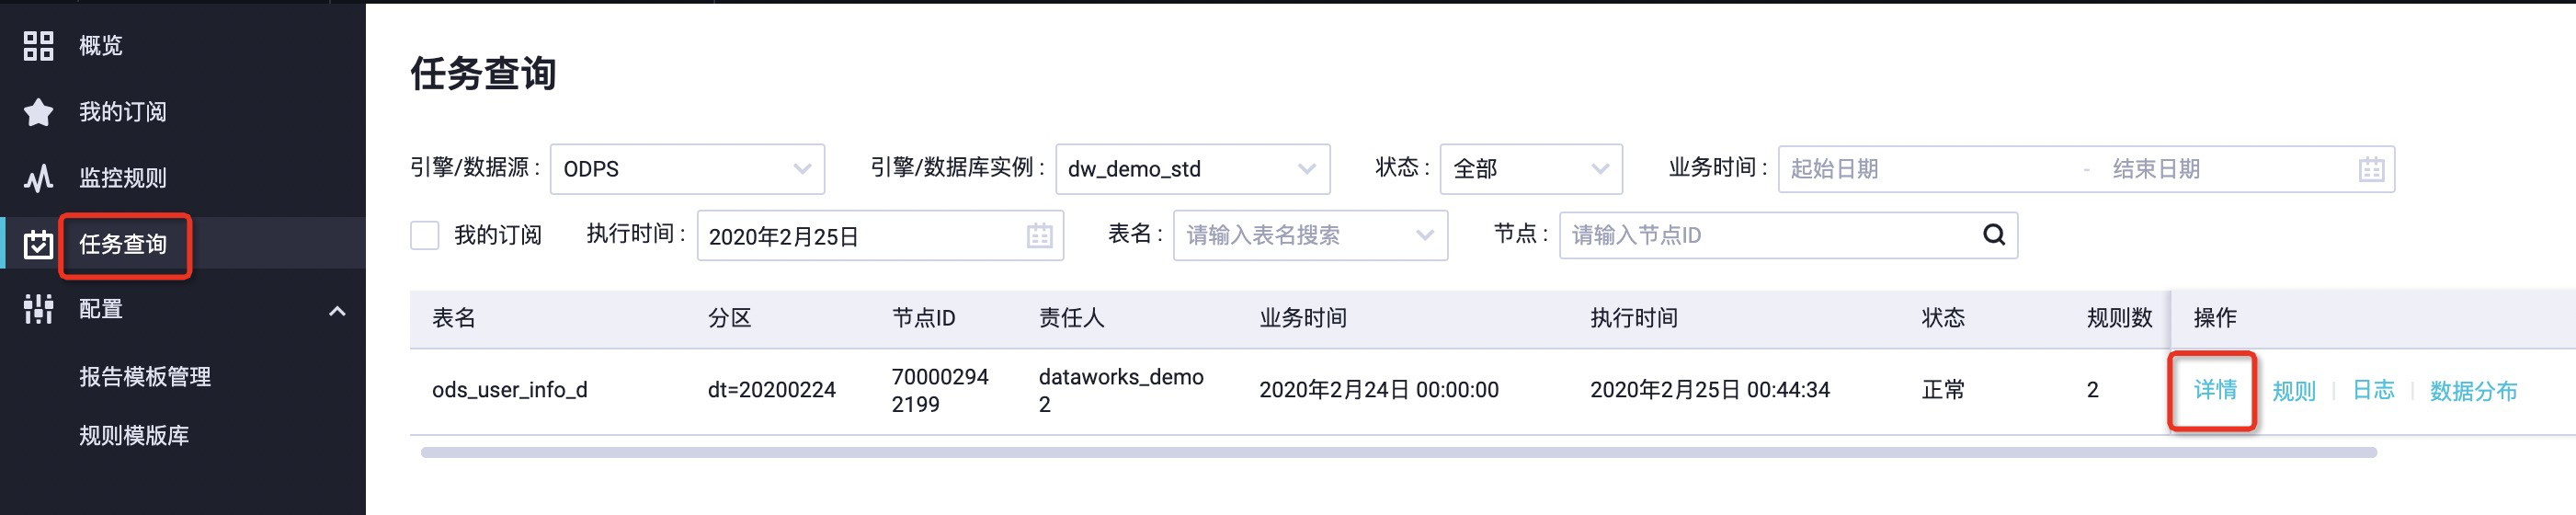 dataworks63-1.png